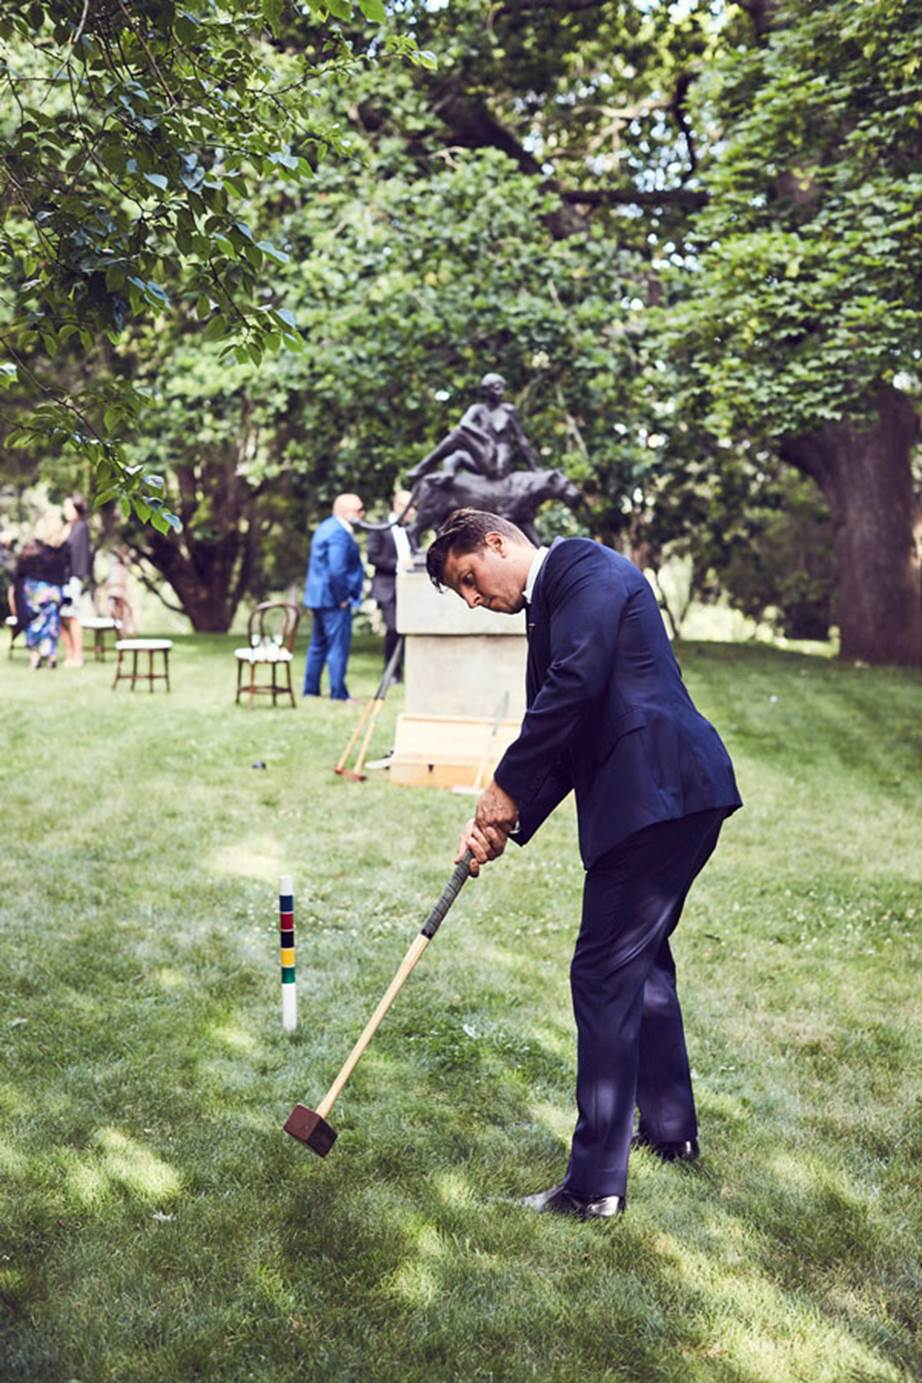 Hopewood House - Weddings  - Harpers Bazaar - Woodland Wedding in the Souther Highlands - Alyssa and Adriano - Lawn games.jpg